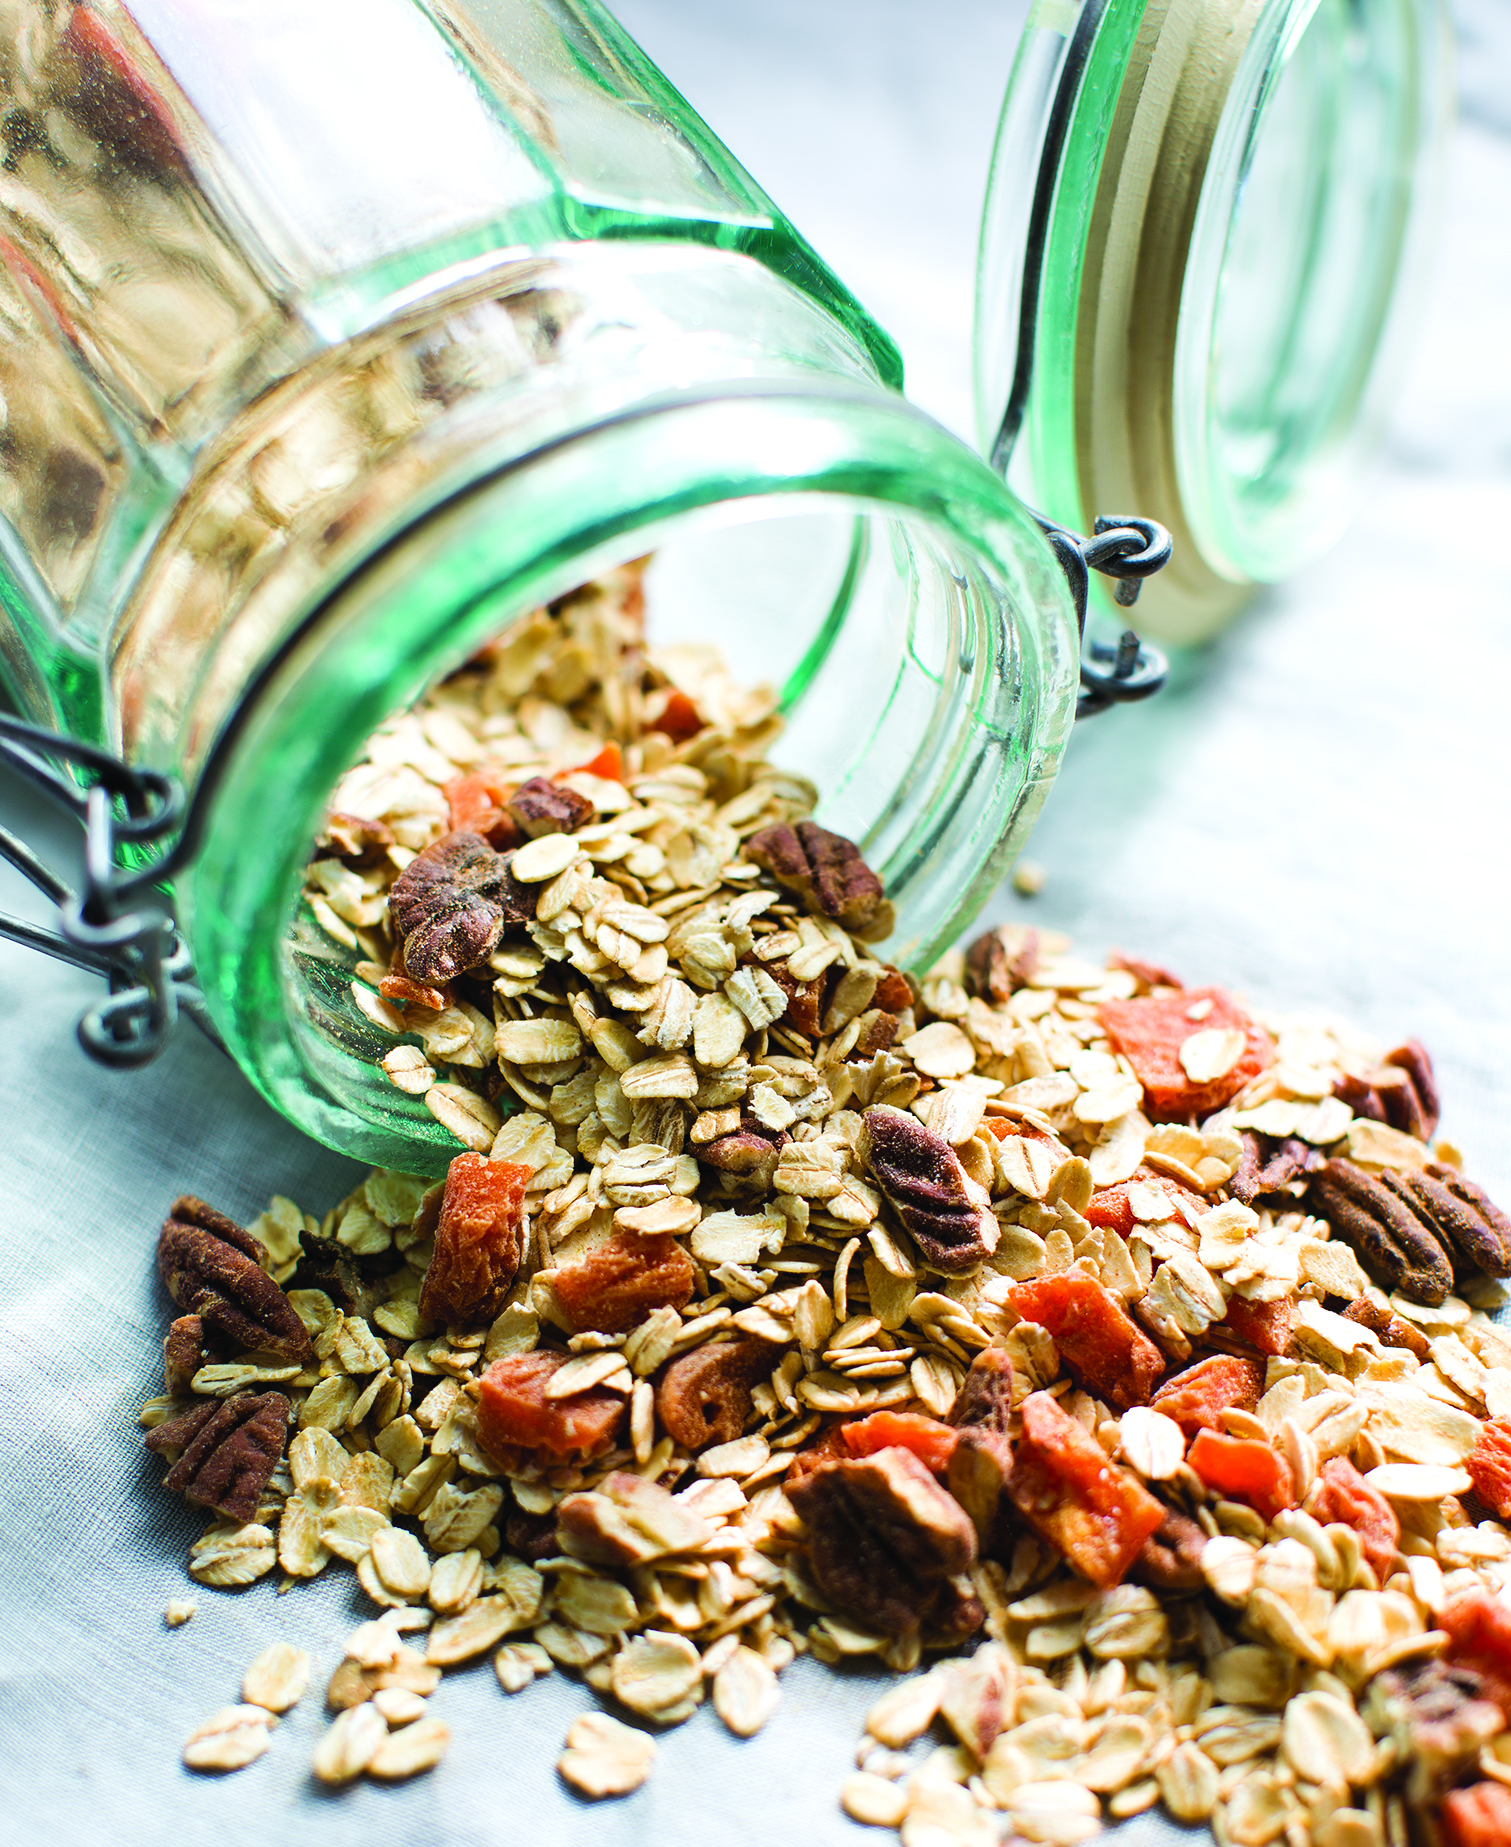 This homemade instant oatmeal is quick, easy and delicious.